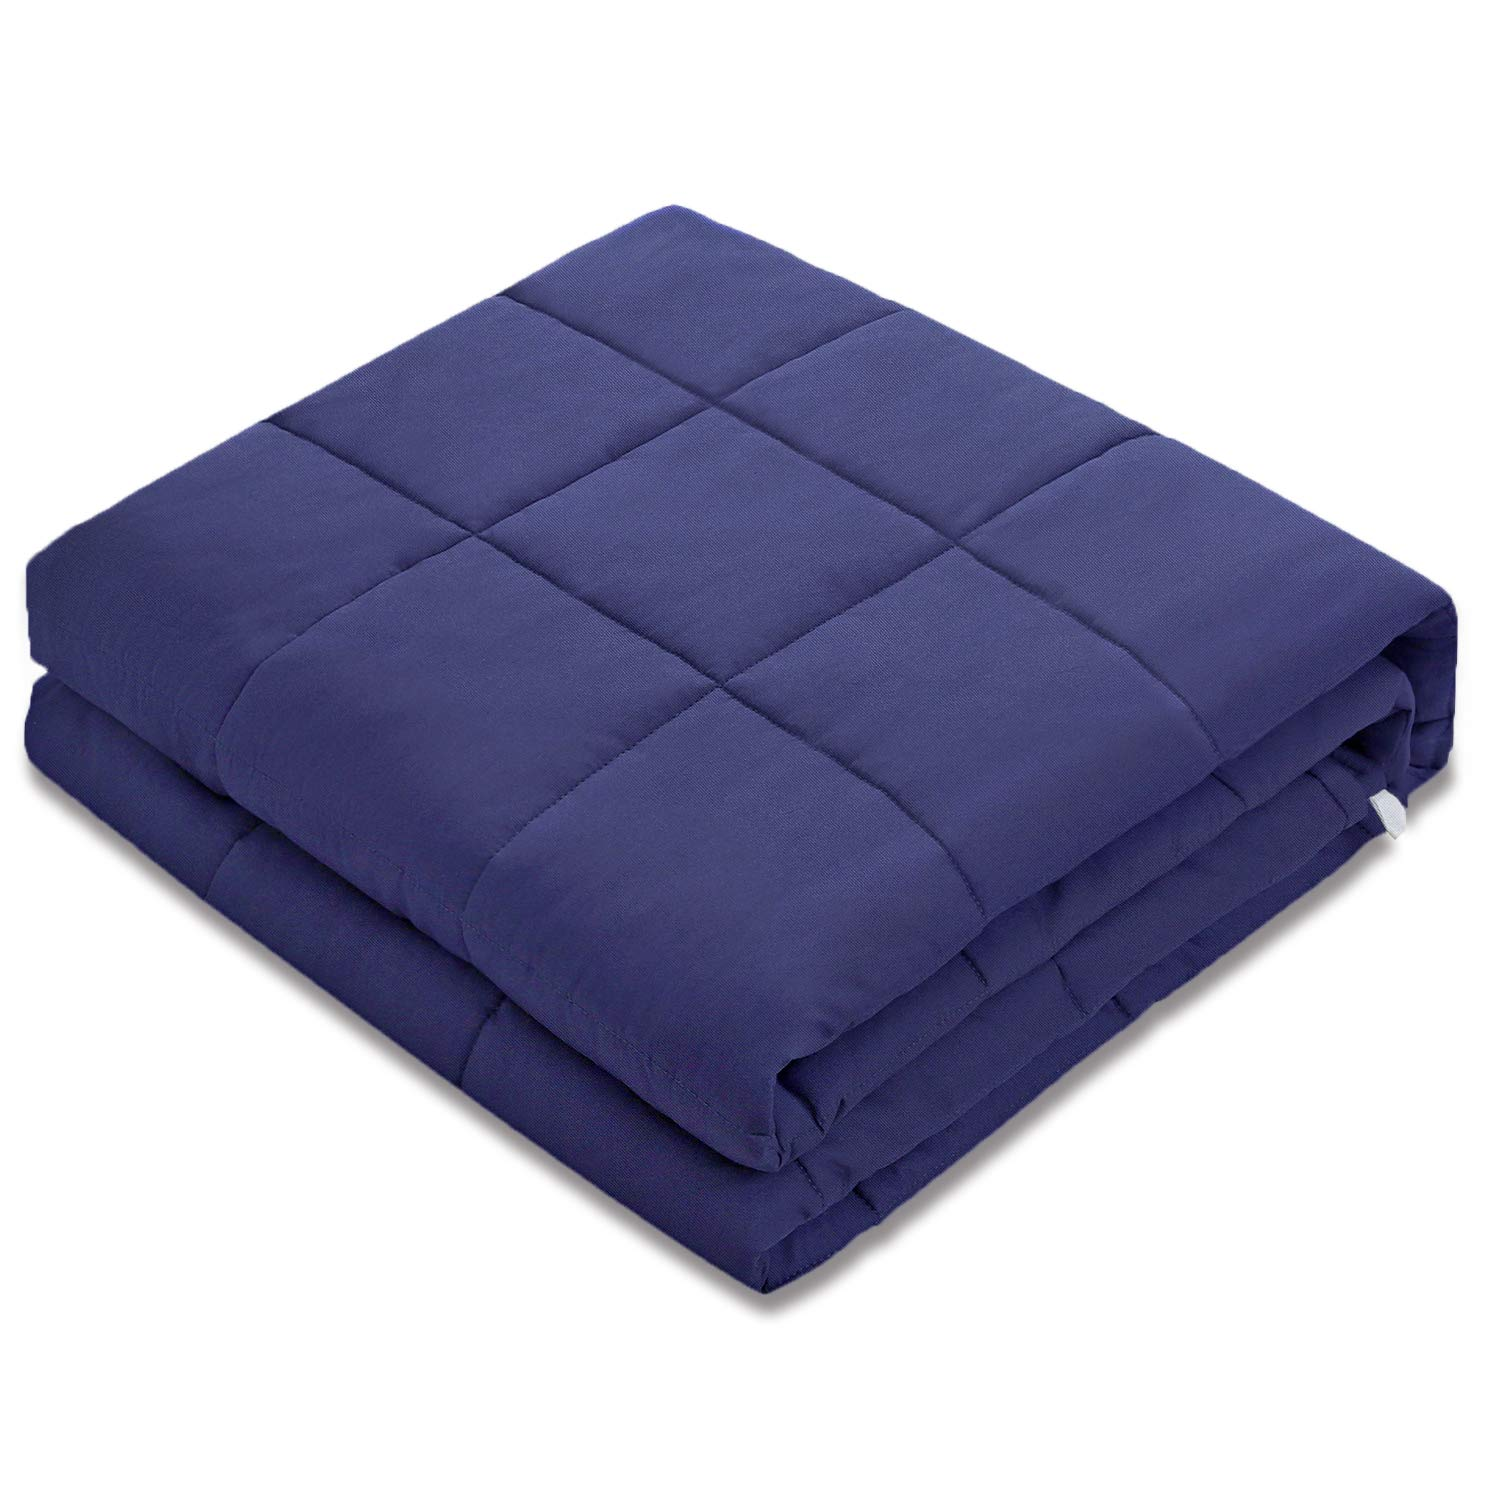 60x80,15 lbs for 140-150 lbs Individual, Navy Amy Garden Weighted Blanket 2.0 Adults Heavy Blanket